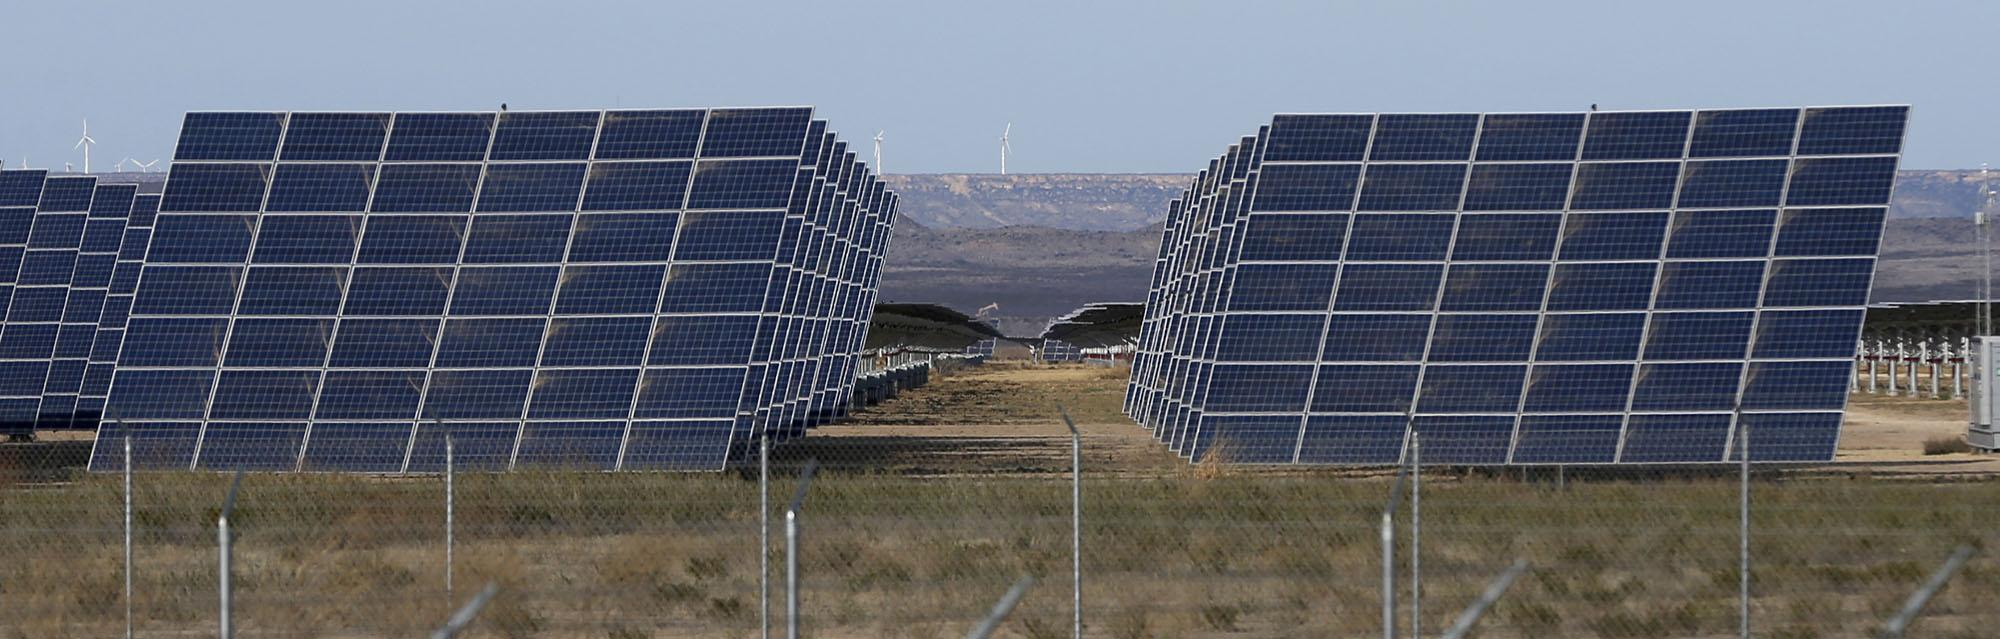 california solar company to build largest solar plant in west texas san antonio express news. Black Bedroom Furniture Sets. Home Design Ideas